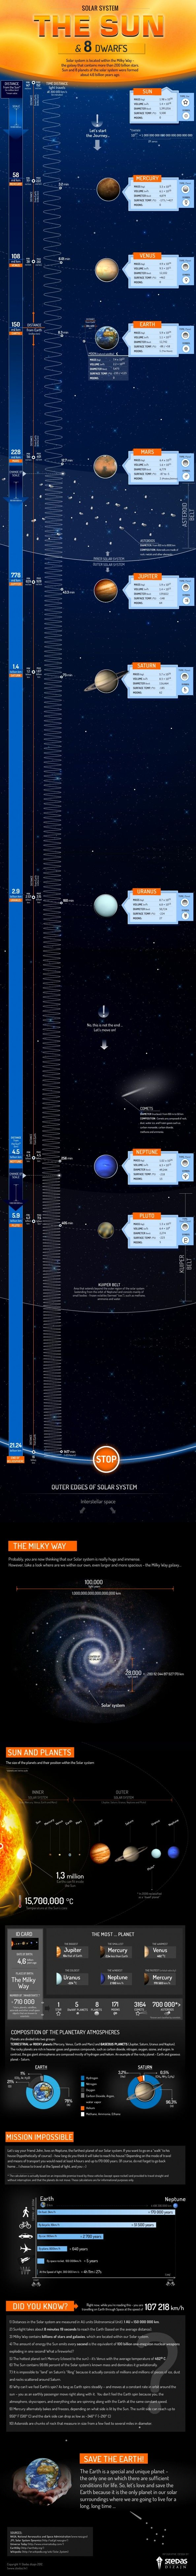 Thinking about our solar system may seem strange to people but there is a lot of interesting things going on in the Milky Way galaxy. This infographic is able to show an example of the distances between planets and size comparisons as well. The top portion of the infographic shows the relative distance between each planet as well as some specs. The bottom half shows a scale of the planets next to one another and offers some very interesting facts.  I challenge anyone who may think that space…